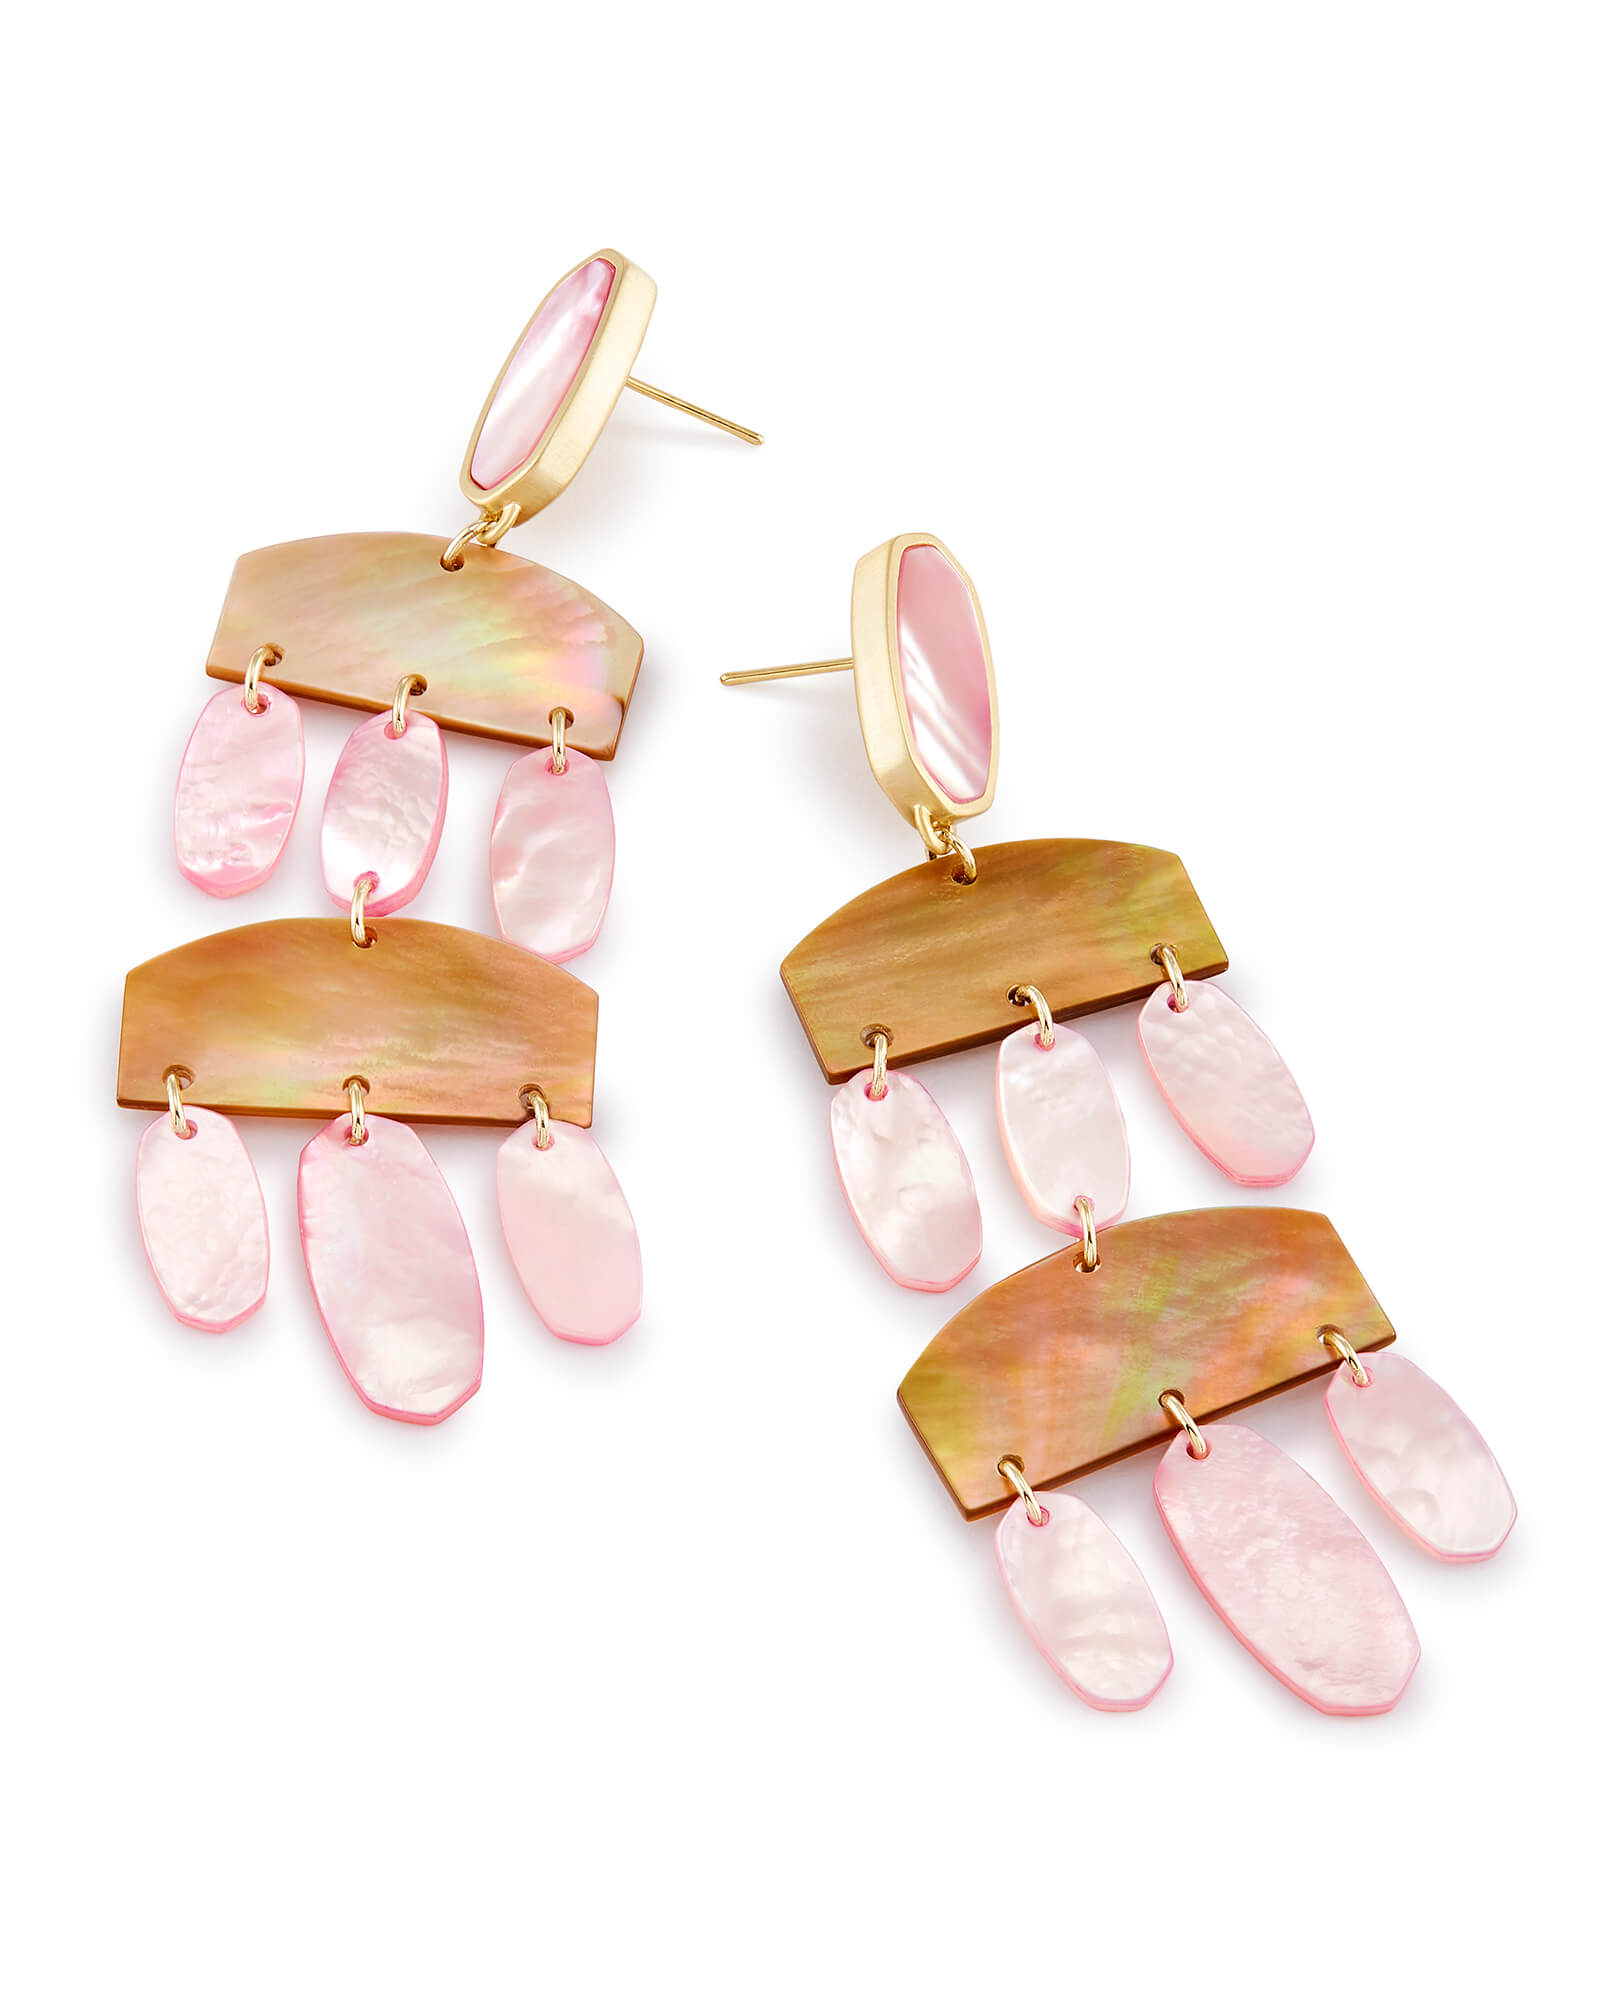 Emmet Statement Earrings in Blush Pearl